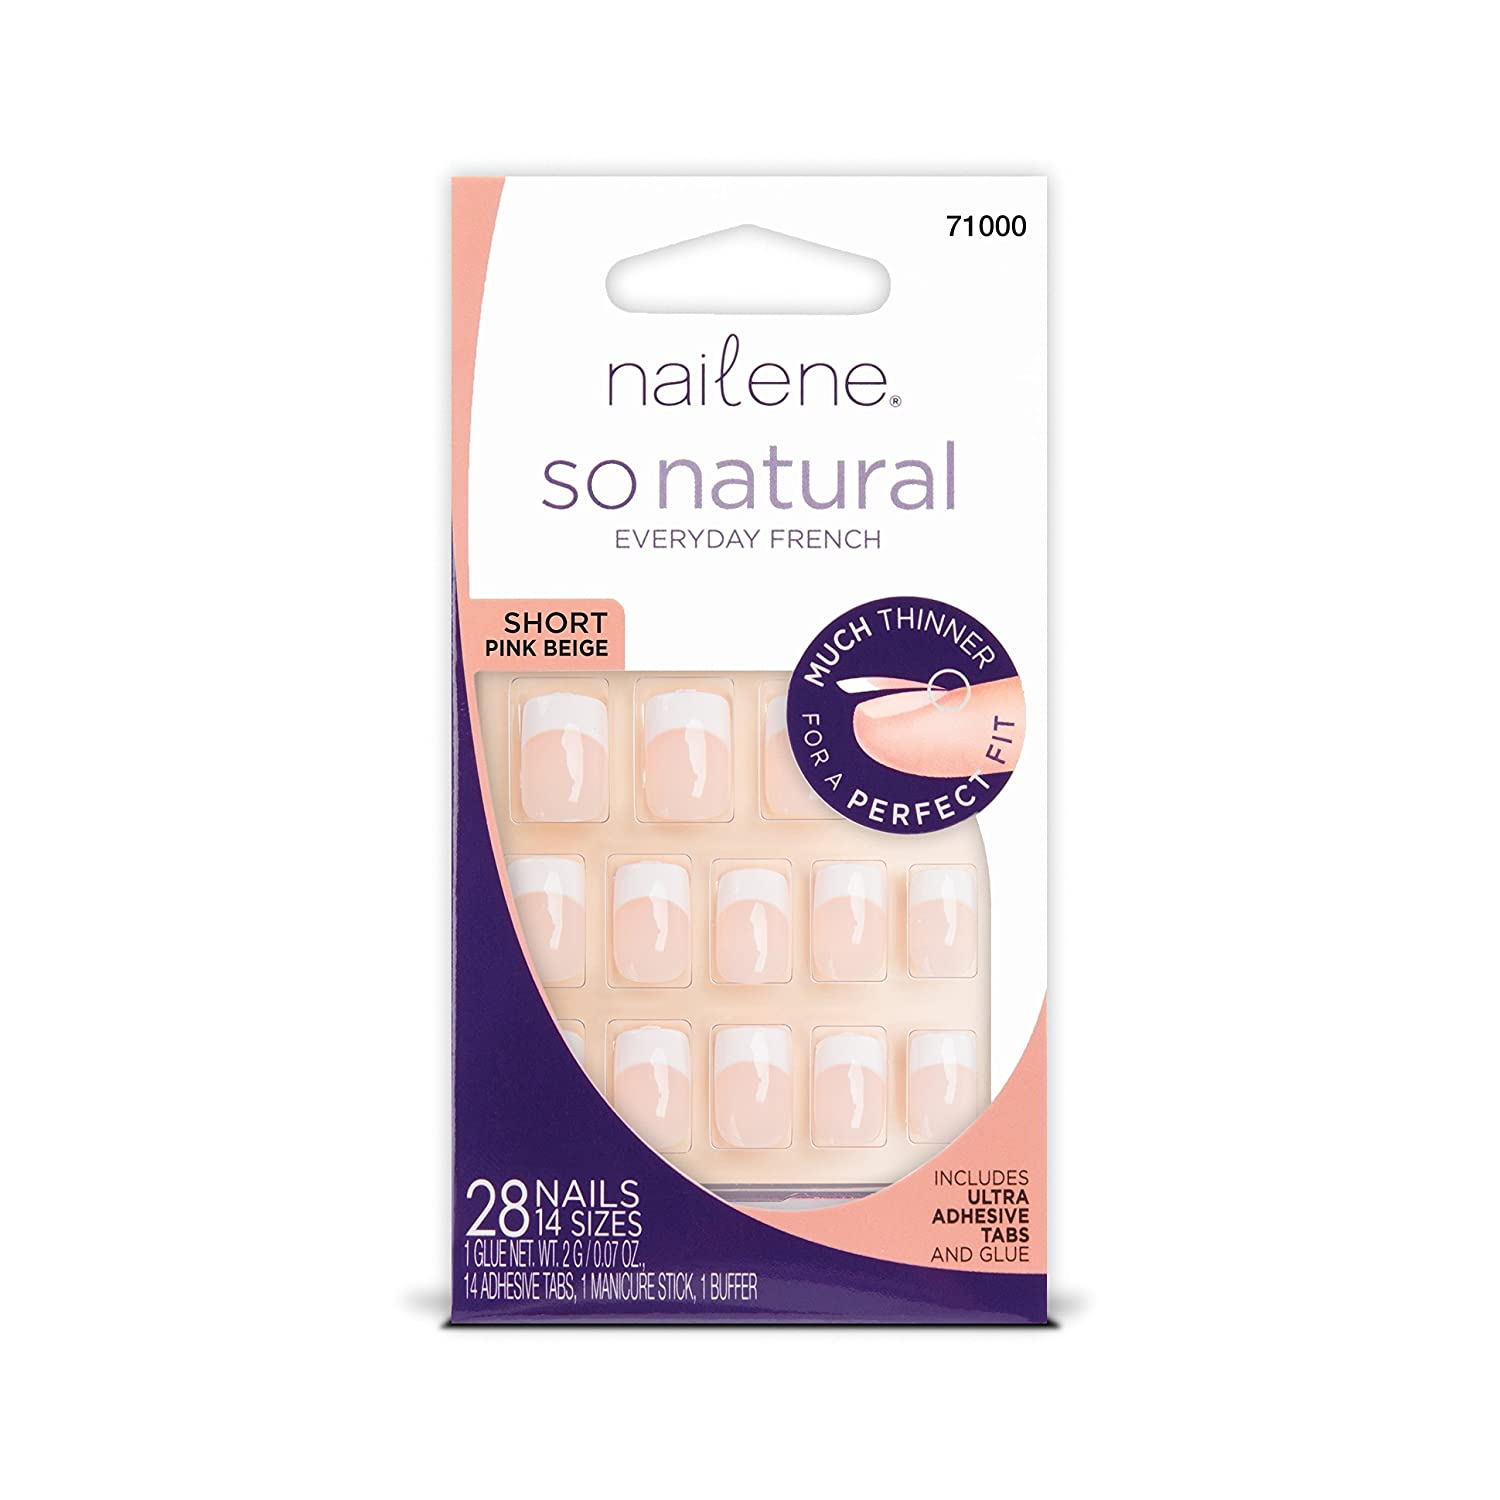 Nailene So Natural Short Nails, Pink, 25.513g Pacific World Corporation 71000